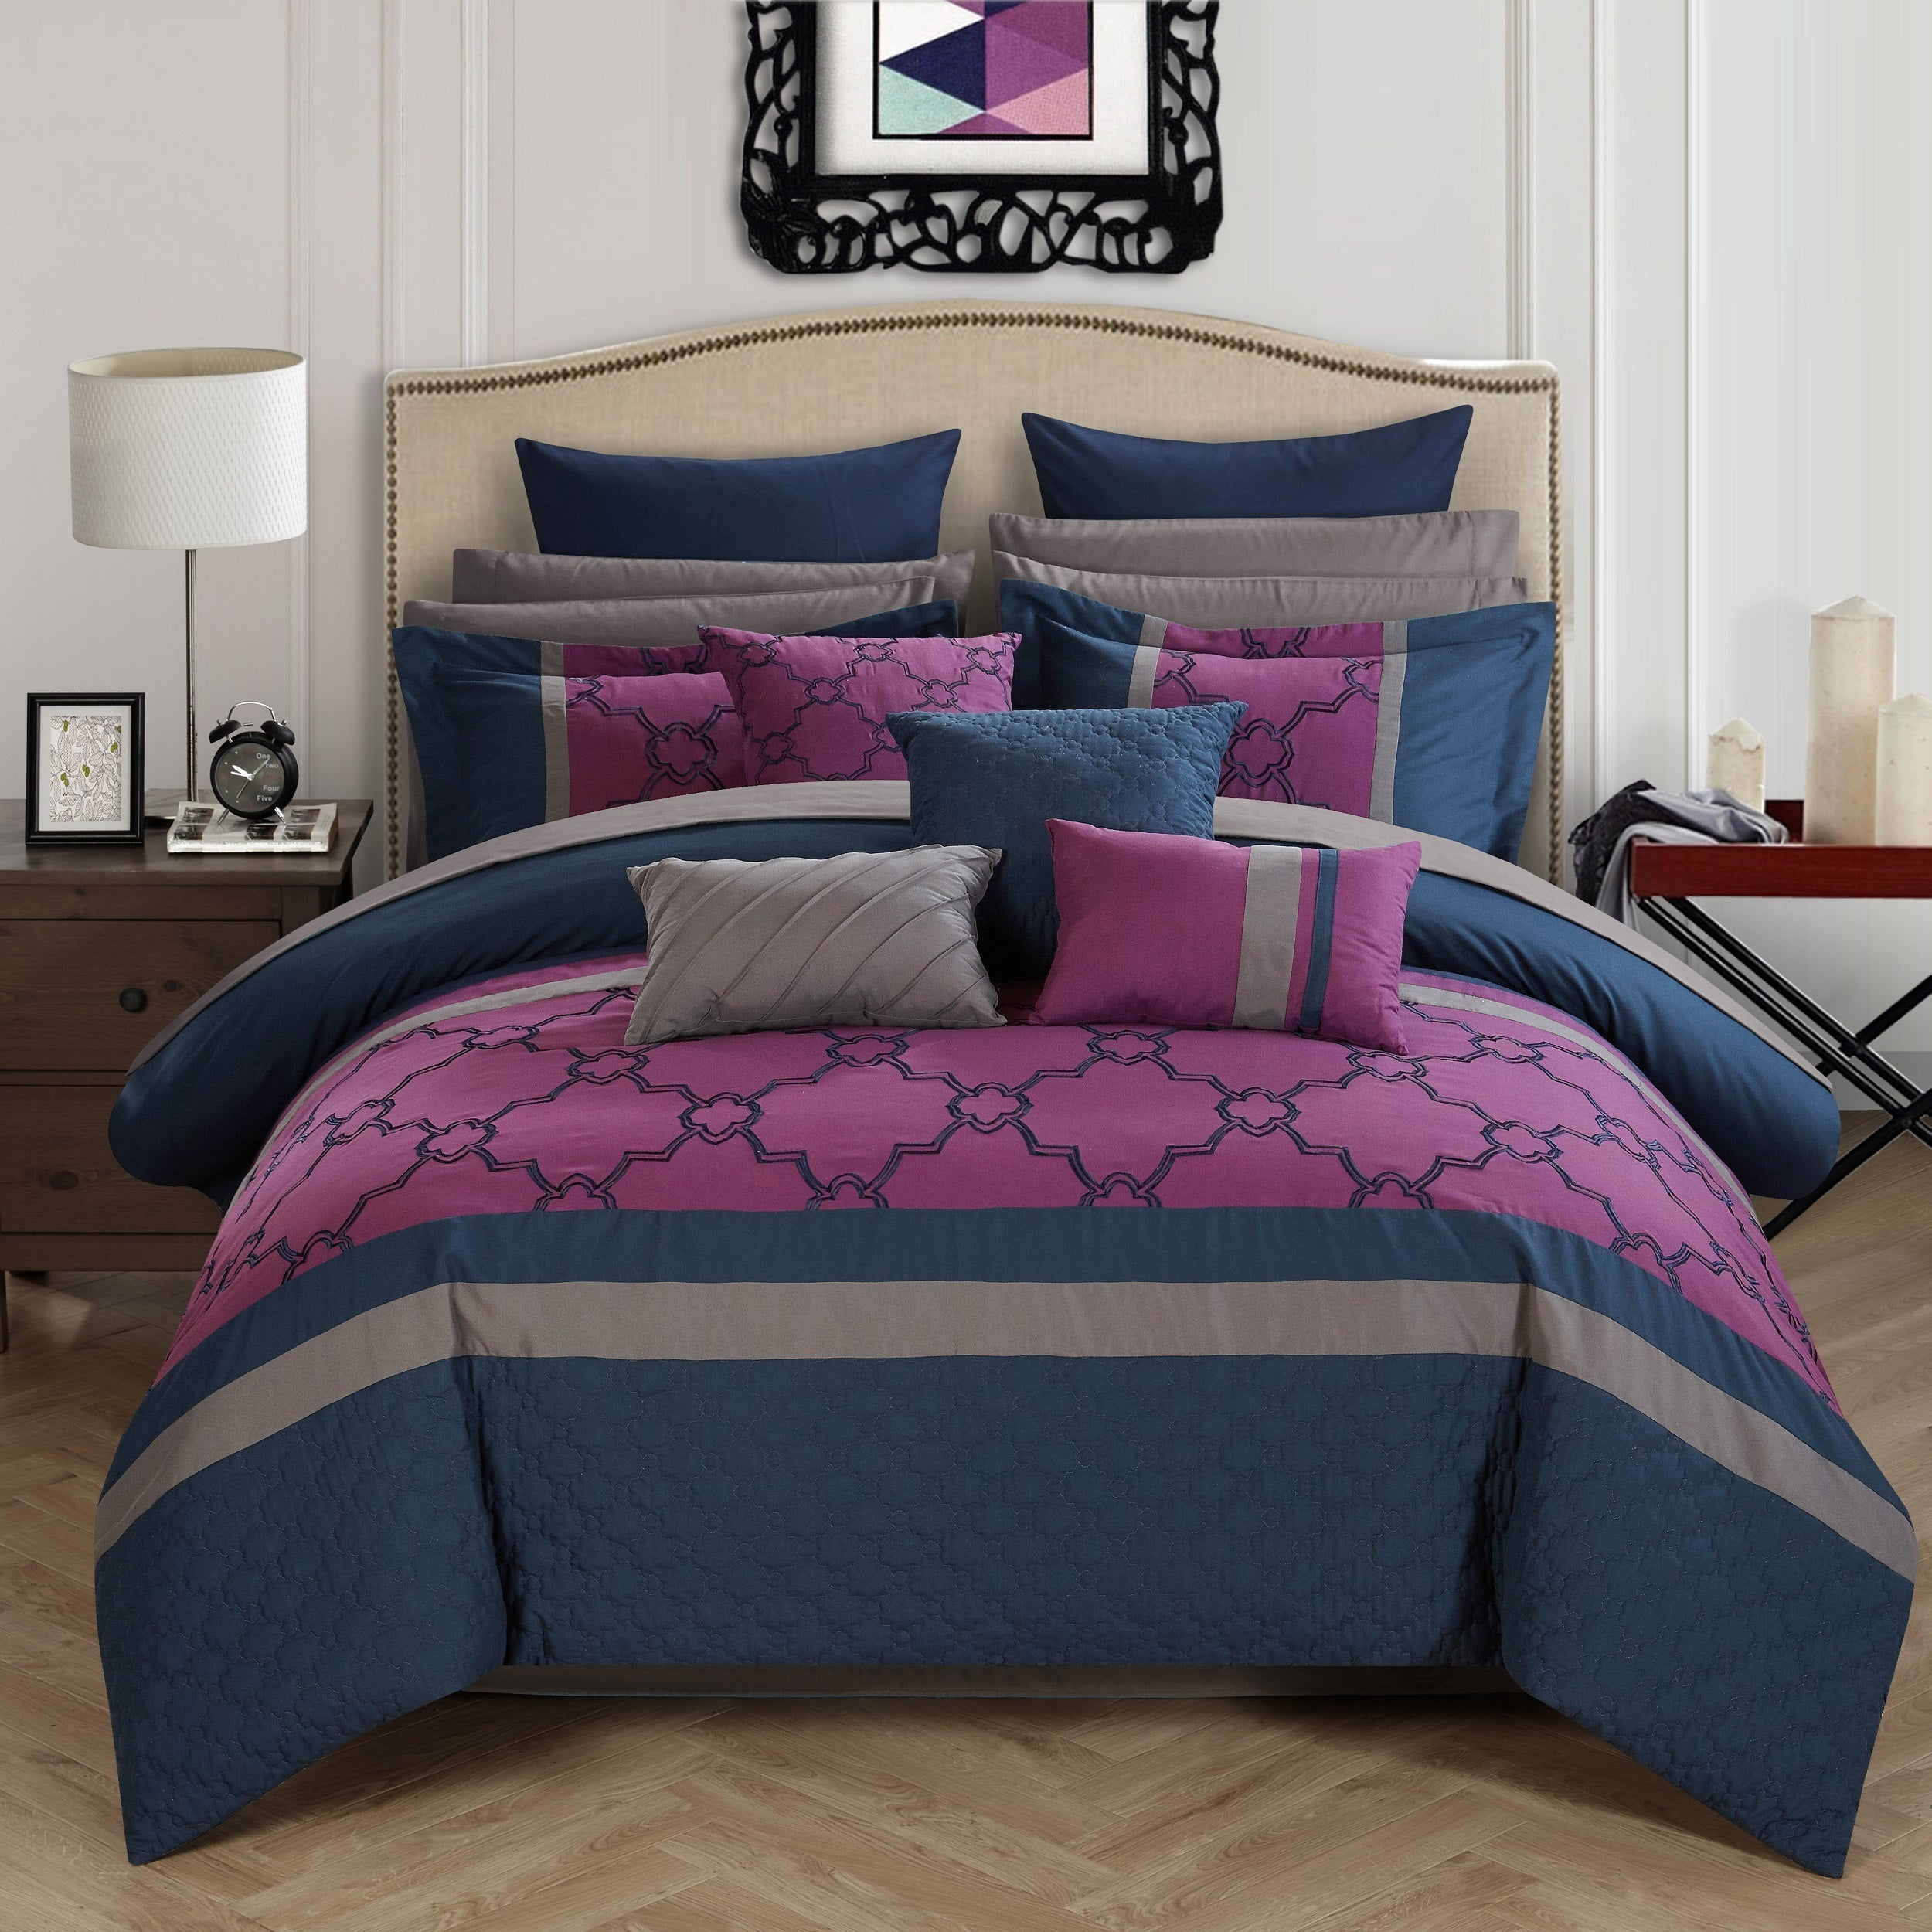 Chic Home 16 Piece Casper King Bed In a Bag forter Set Free